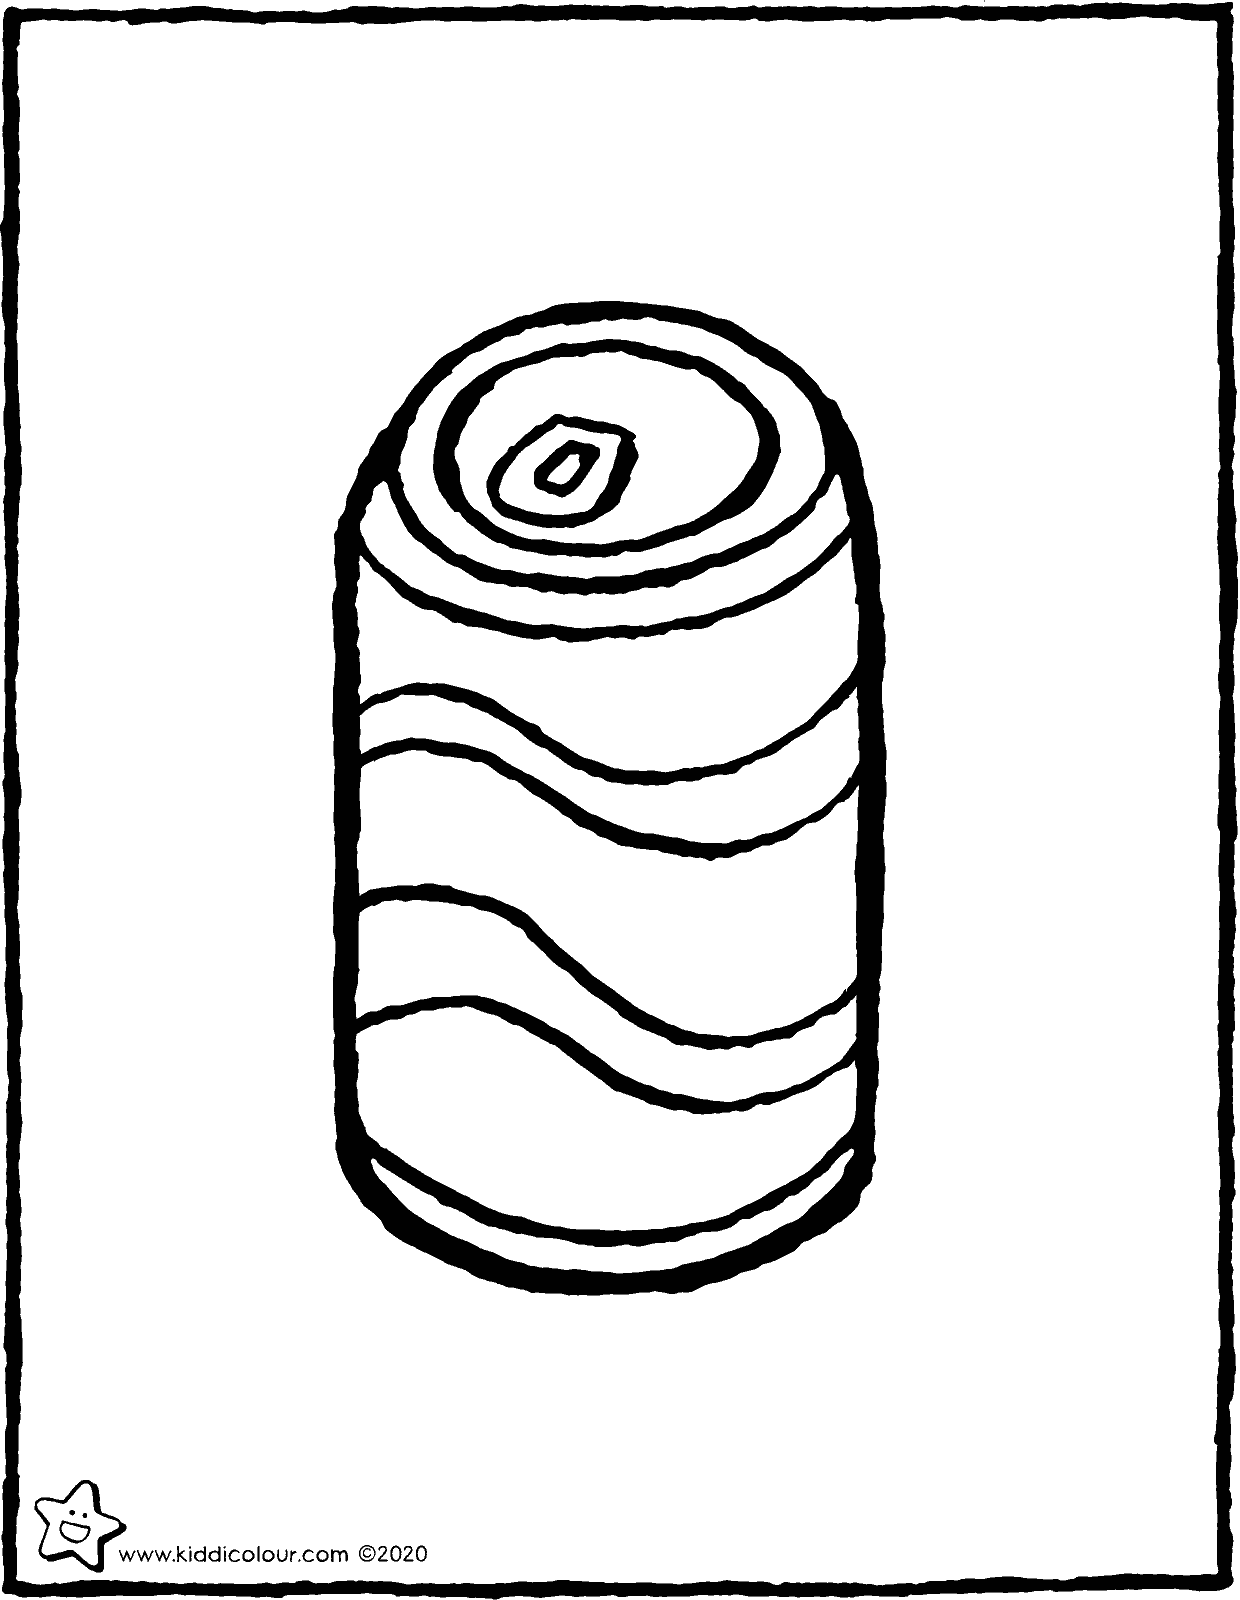 drink can colouring page drawing picture 01V